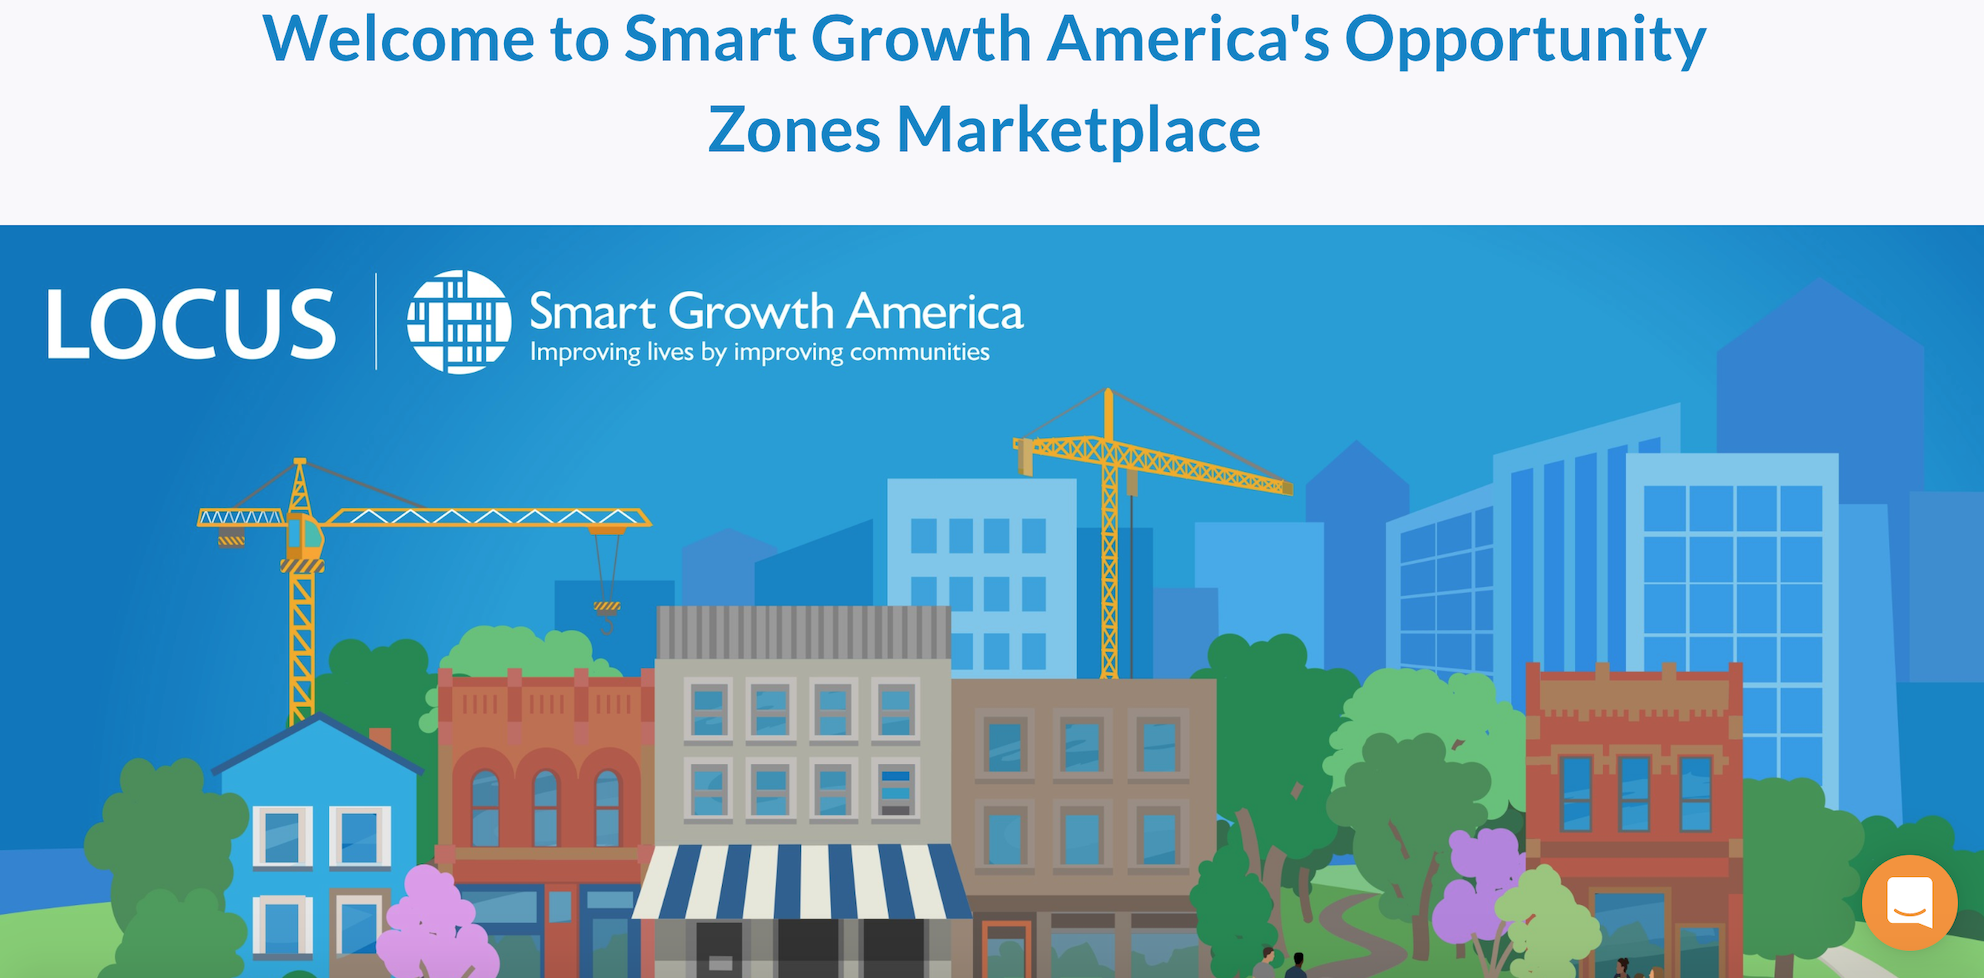 https://anysizedealsweek.com/wp-content/uploads/2020/03/Smart-Growth-America-Opportunity-Zones.png